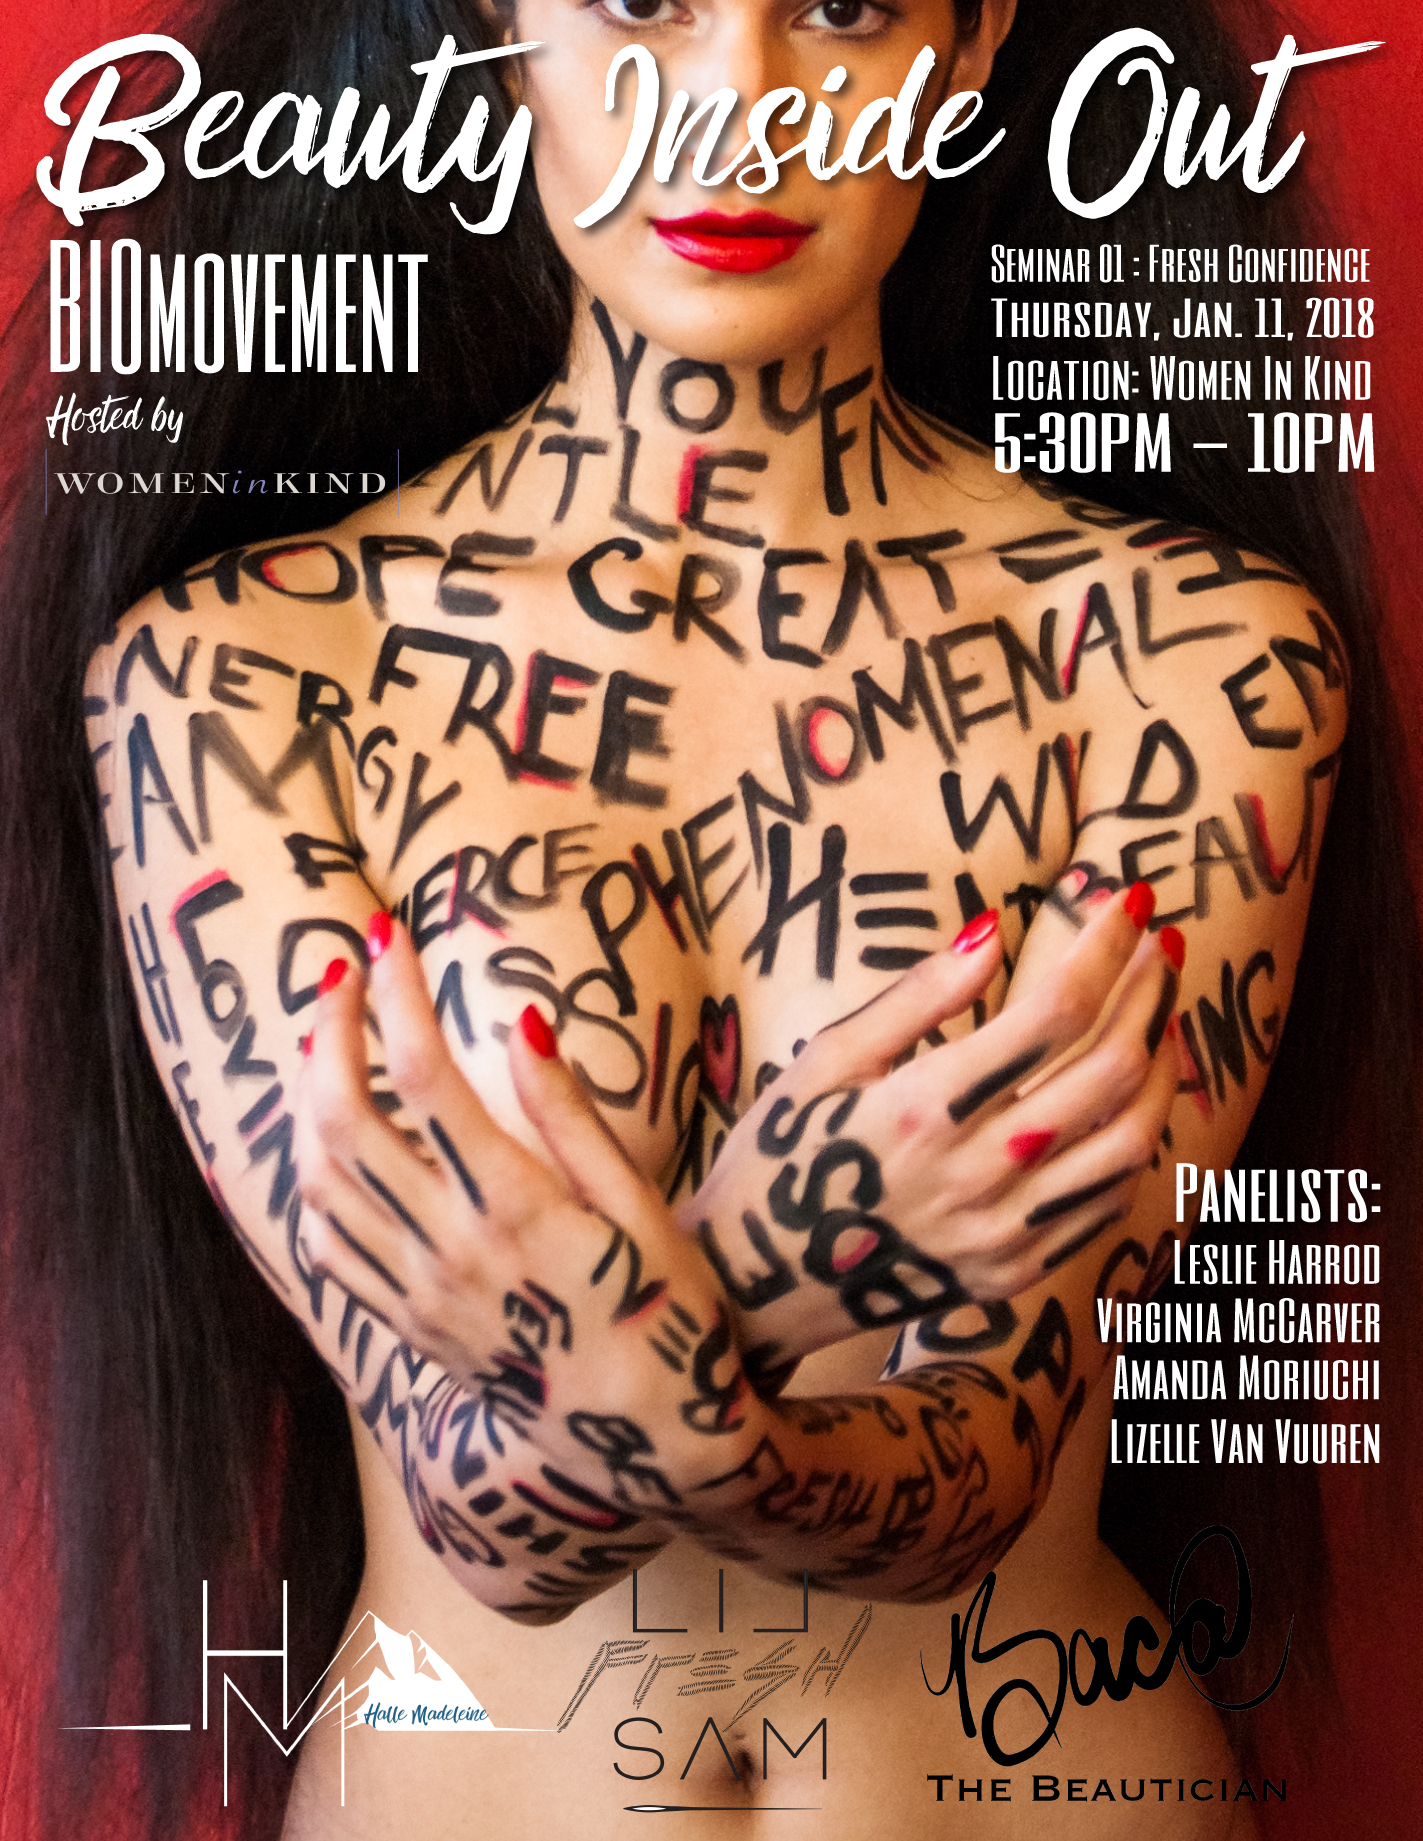 BIOmovement - Beauty Inside Out: A Women's Empowerment Seminar